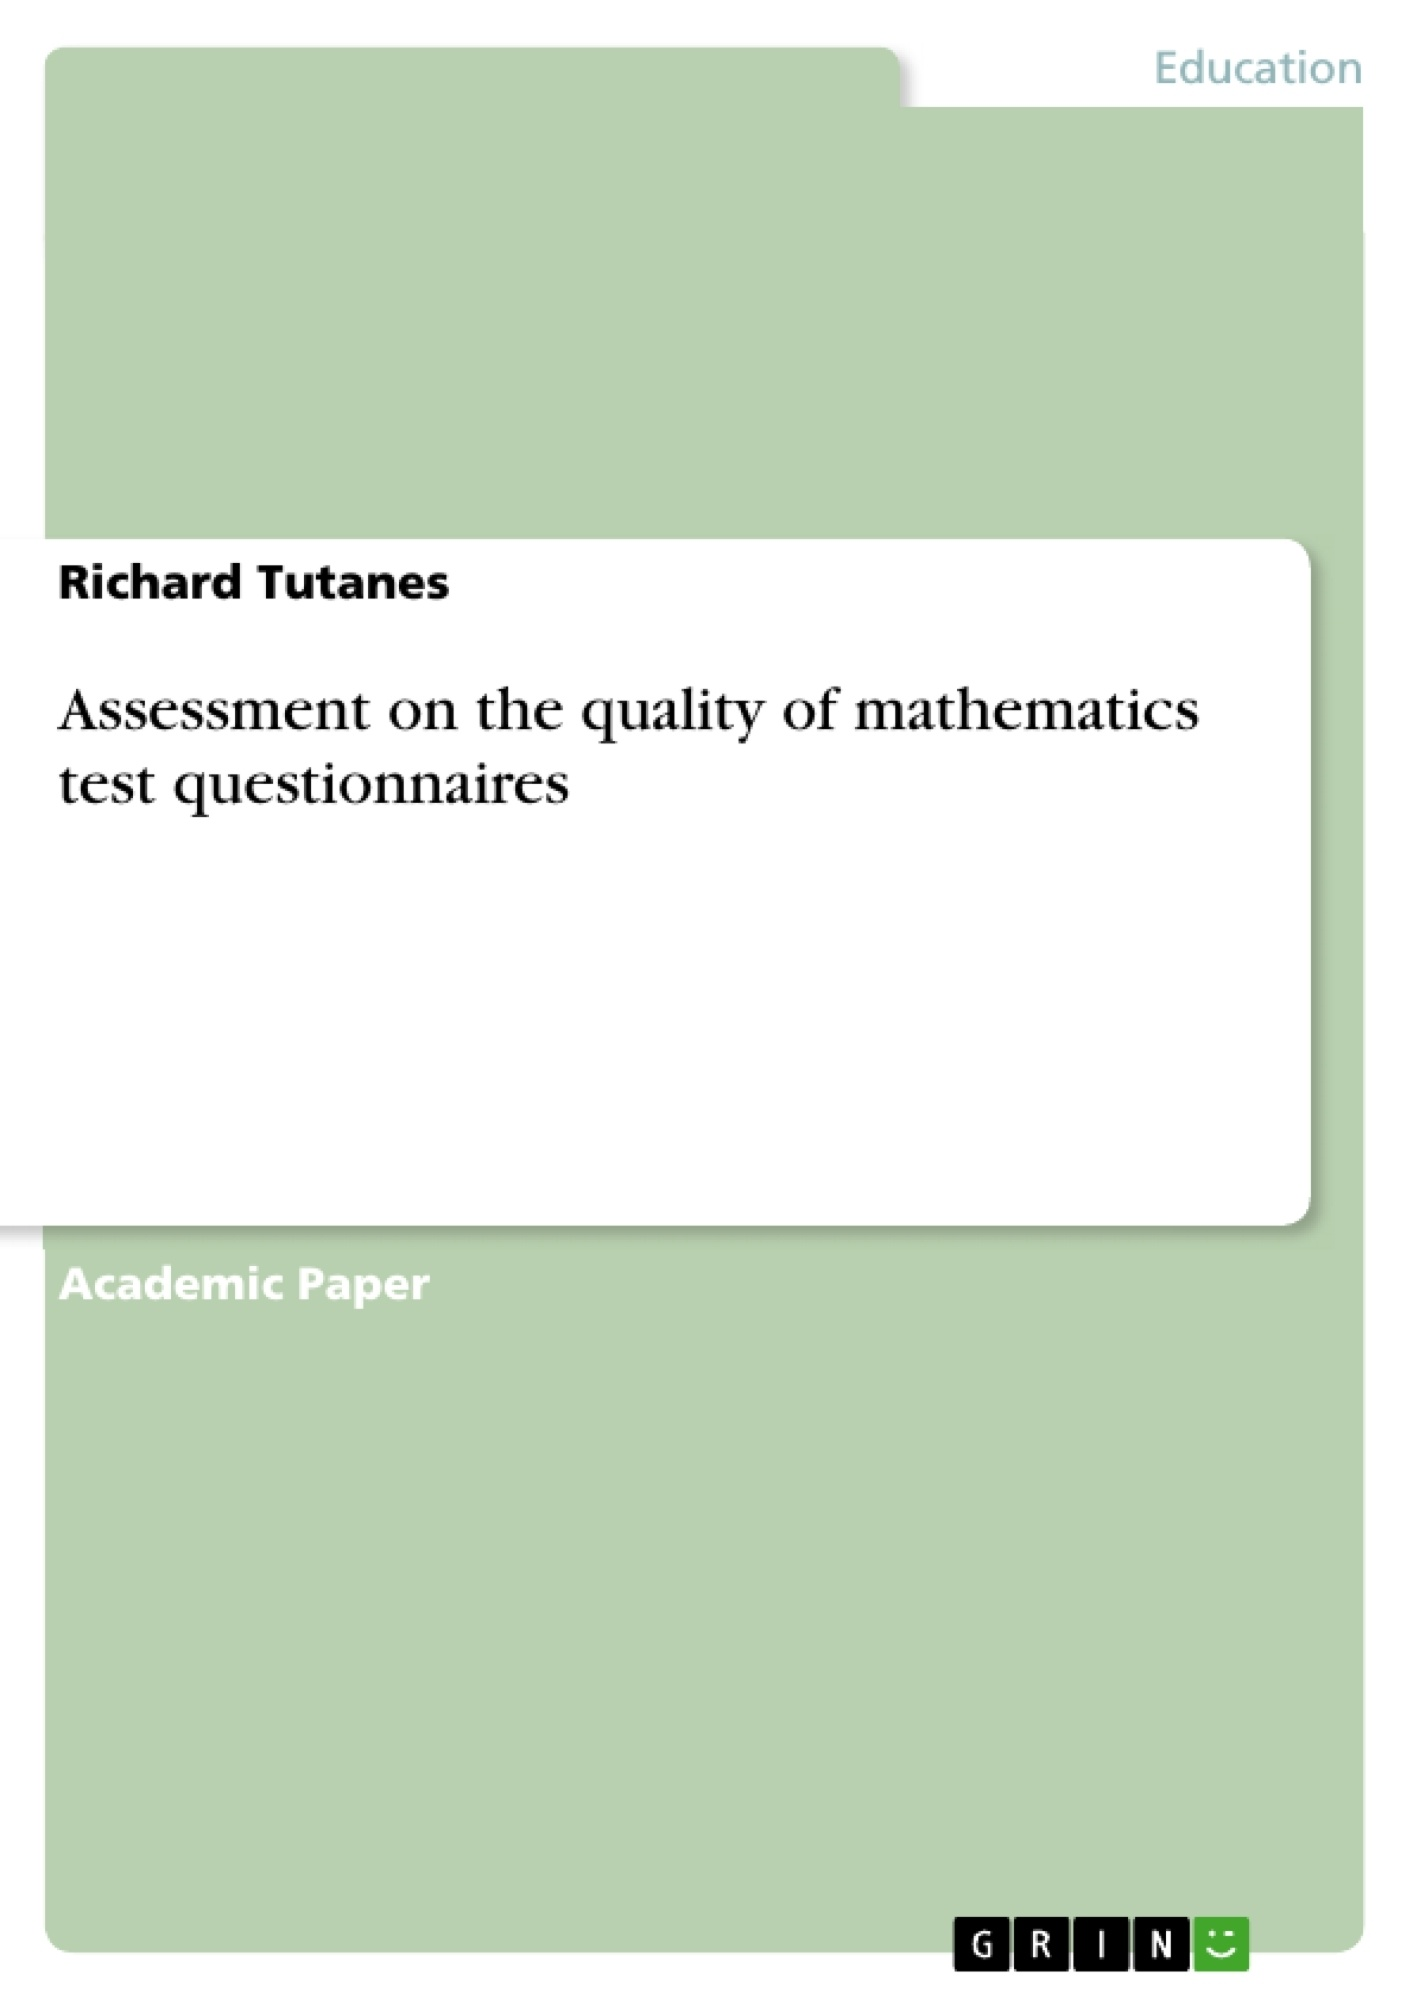 Title: Assessment on the quality of mathematics test questionnaires